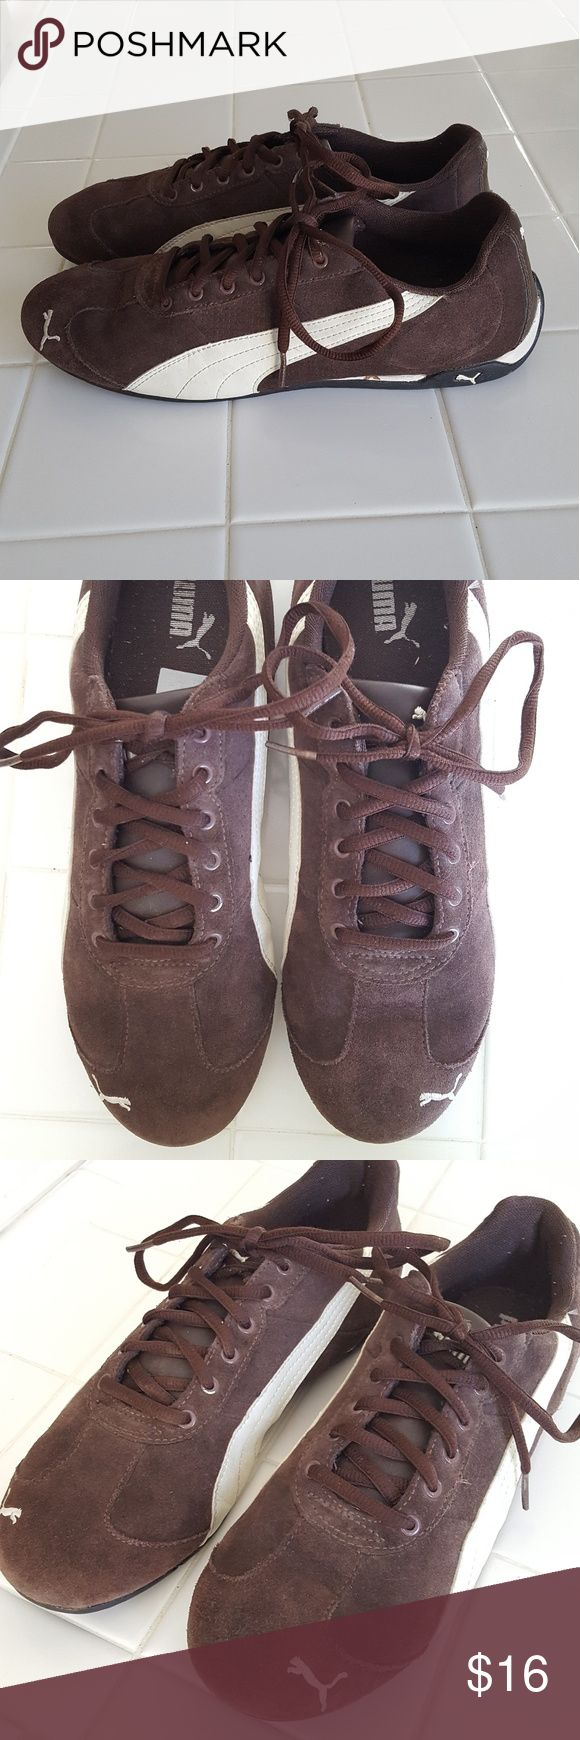 Men's PUMA sneakers, brown suede, Sz 8.5 Brown suede men's PUMA athletic shoes, gently used Puma Shoes Athletic Shoes